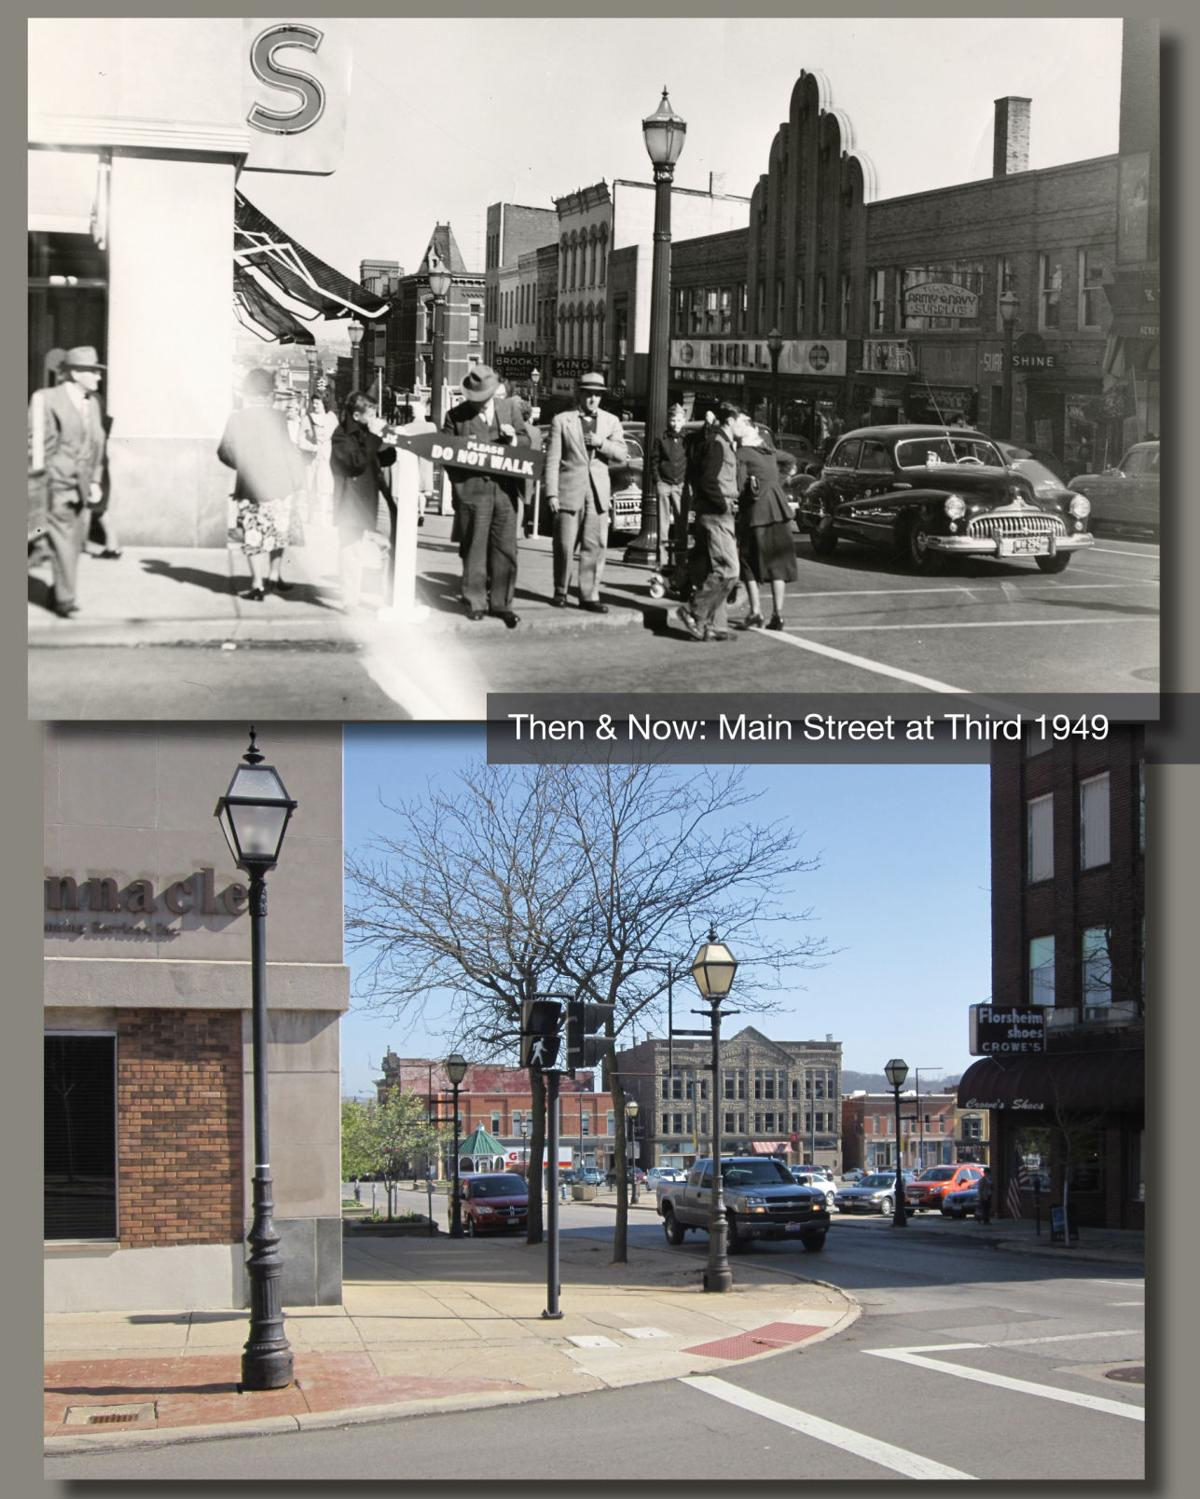 Then & Now: Main Street at Third 1949